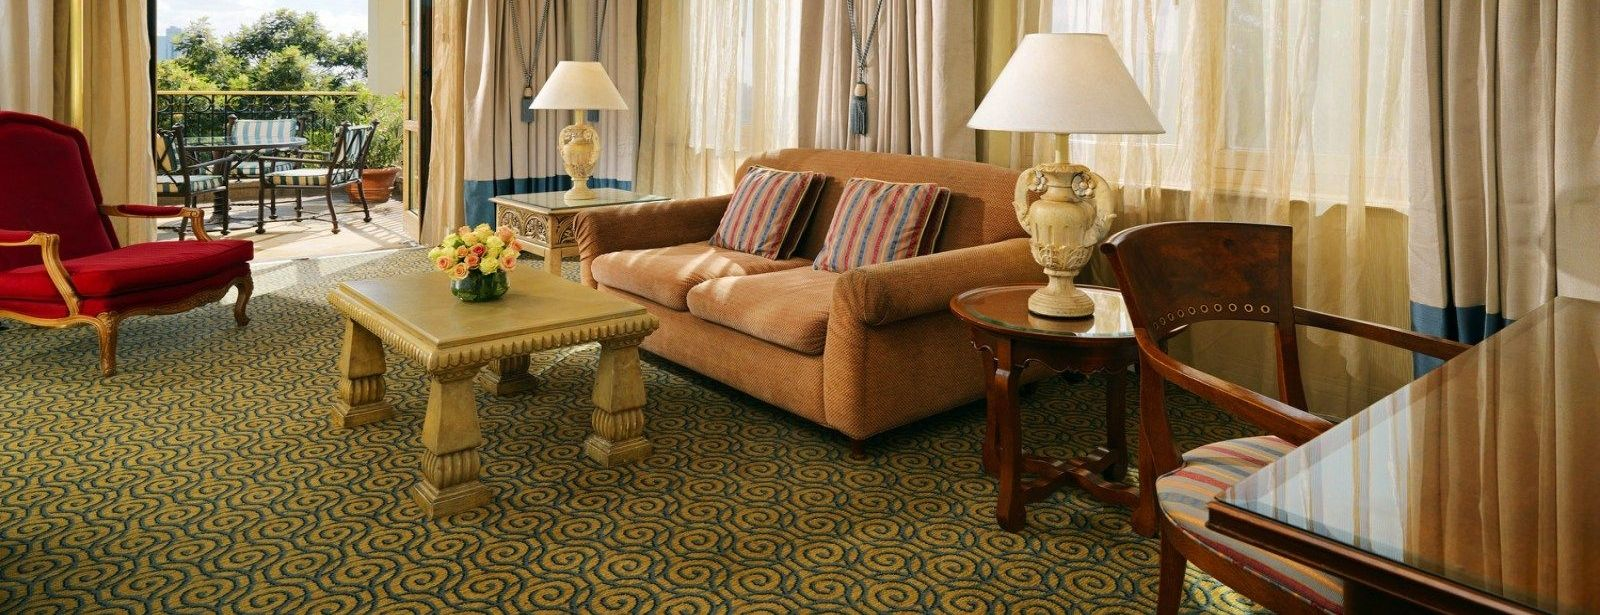 Classic Suite Lounge interior, a spacious inviting area